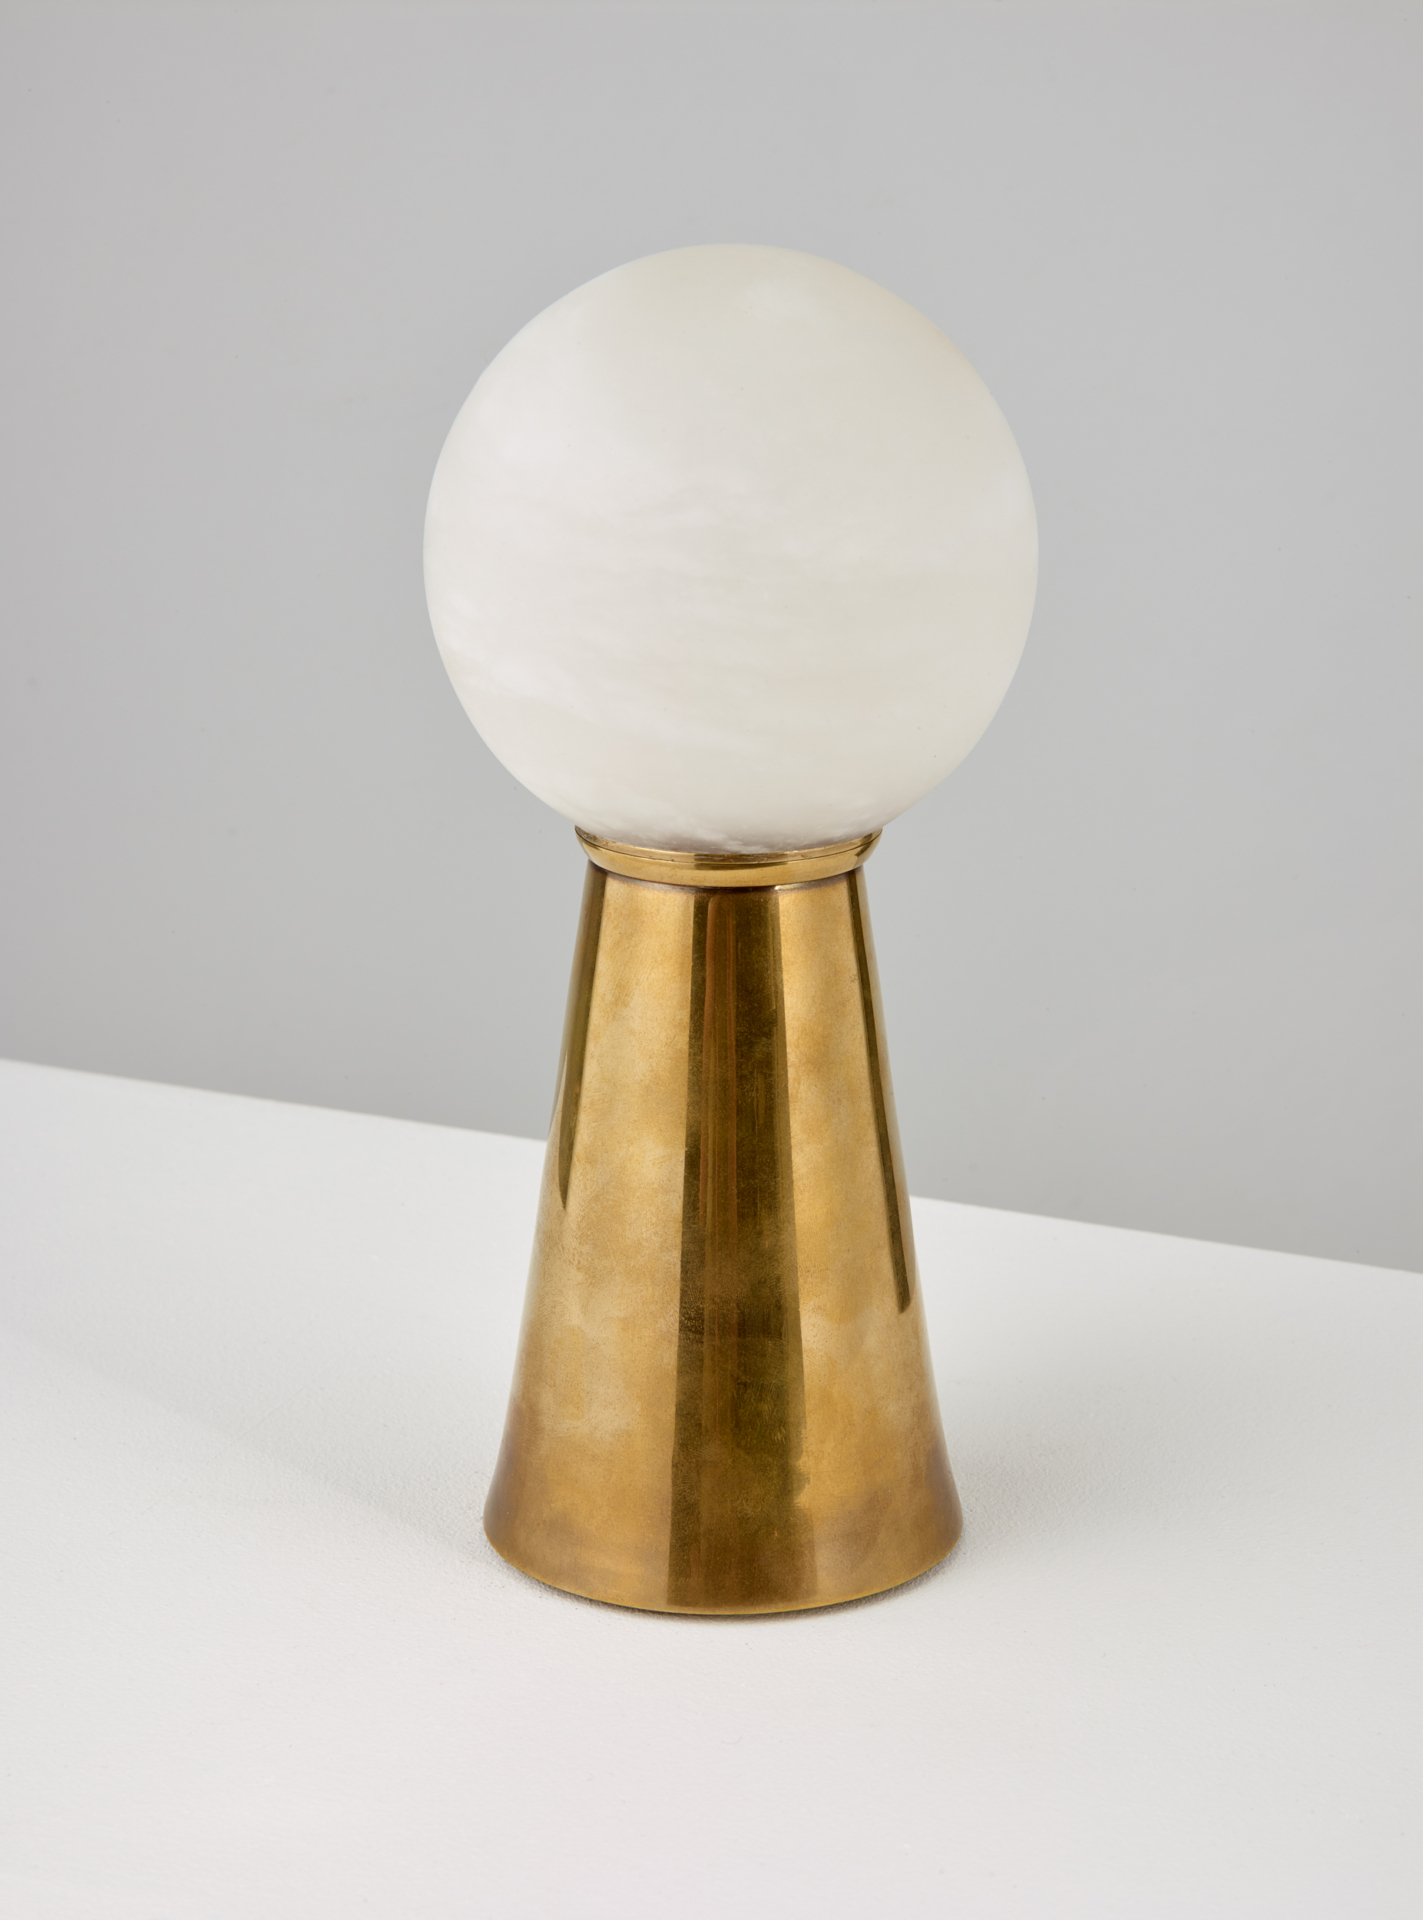 luxury rechargeable table light by Collier Webb